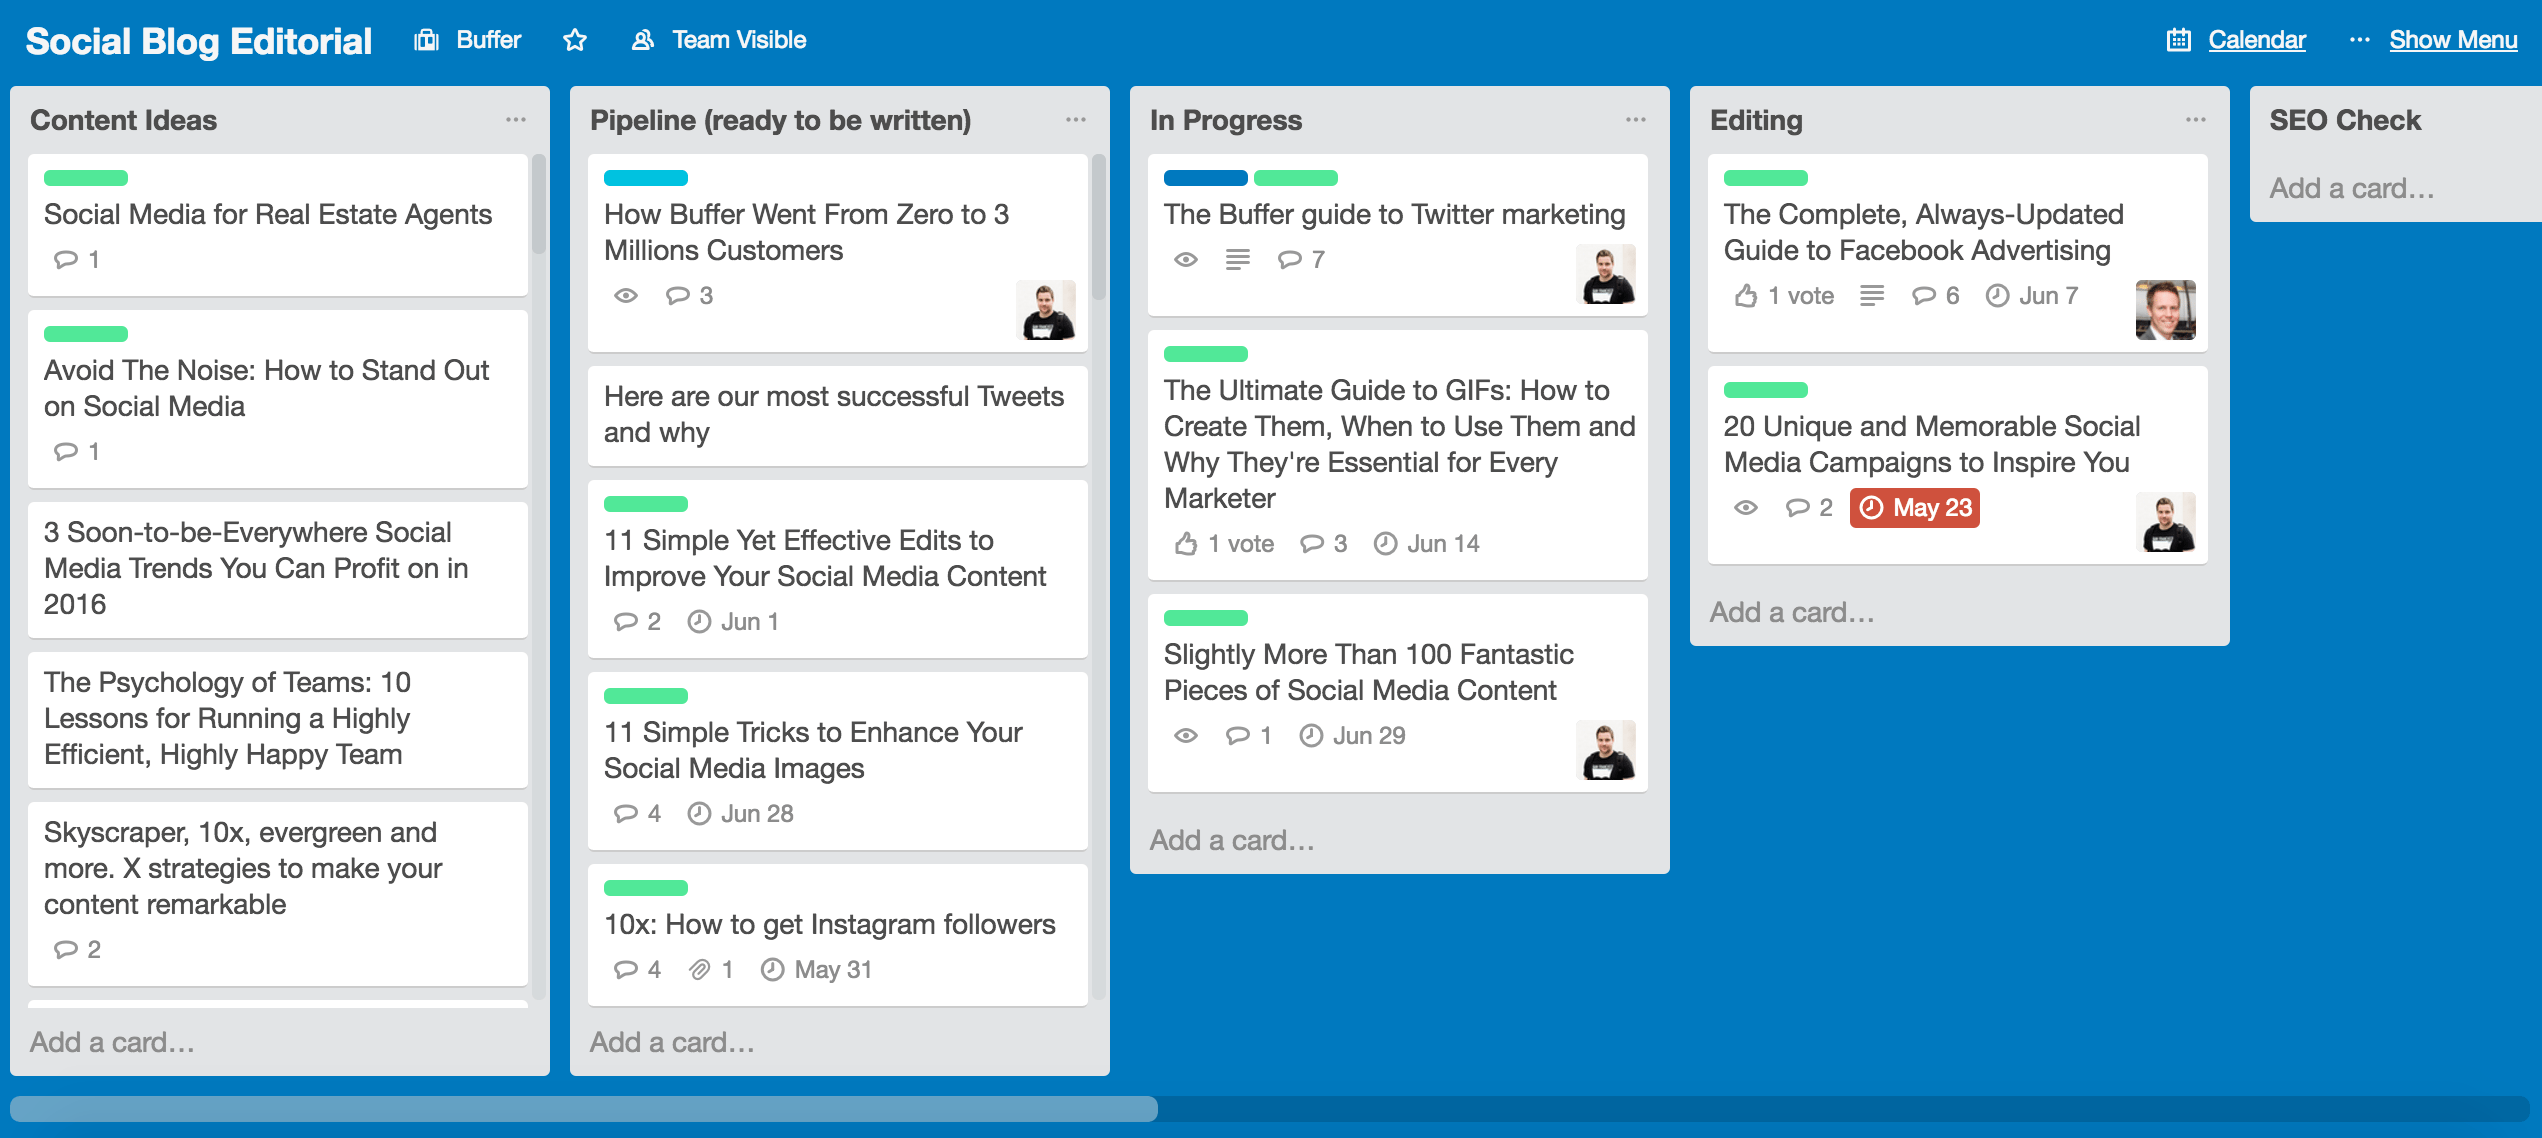 Trello-Board von Buffer